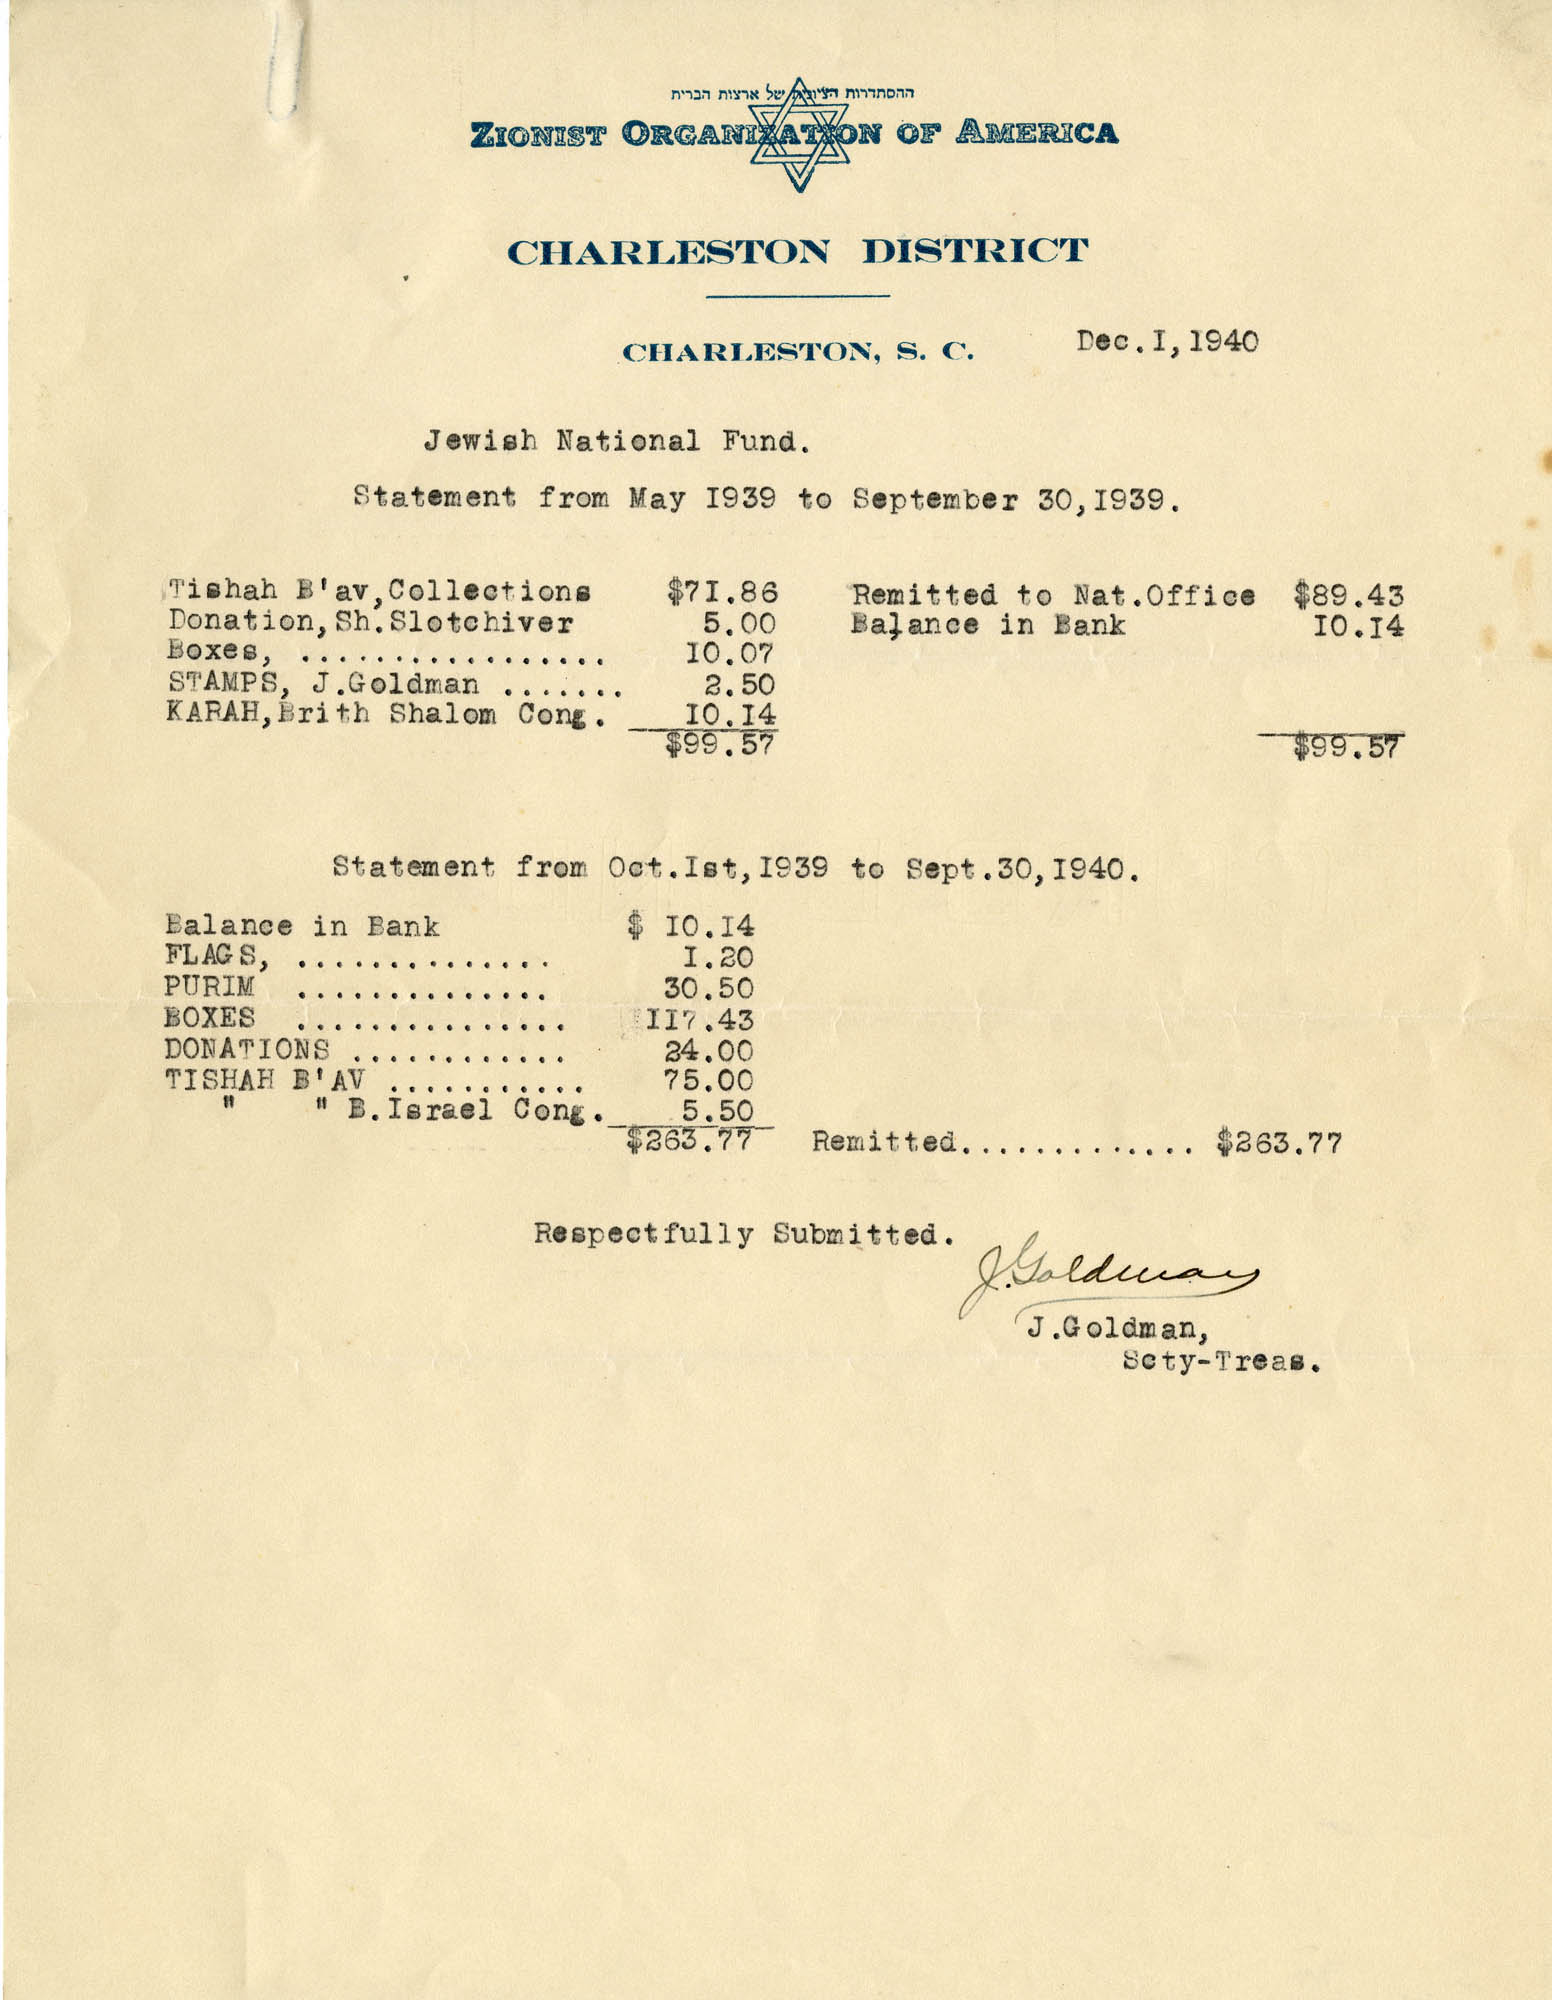 07. Jewish National Fund Bank Statement